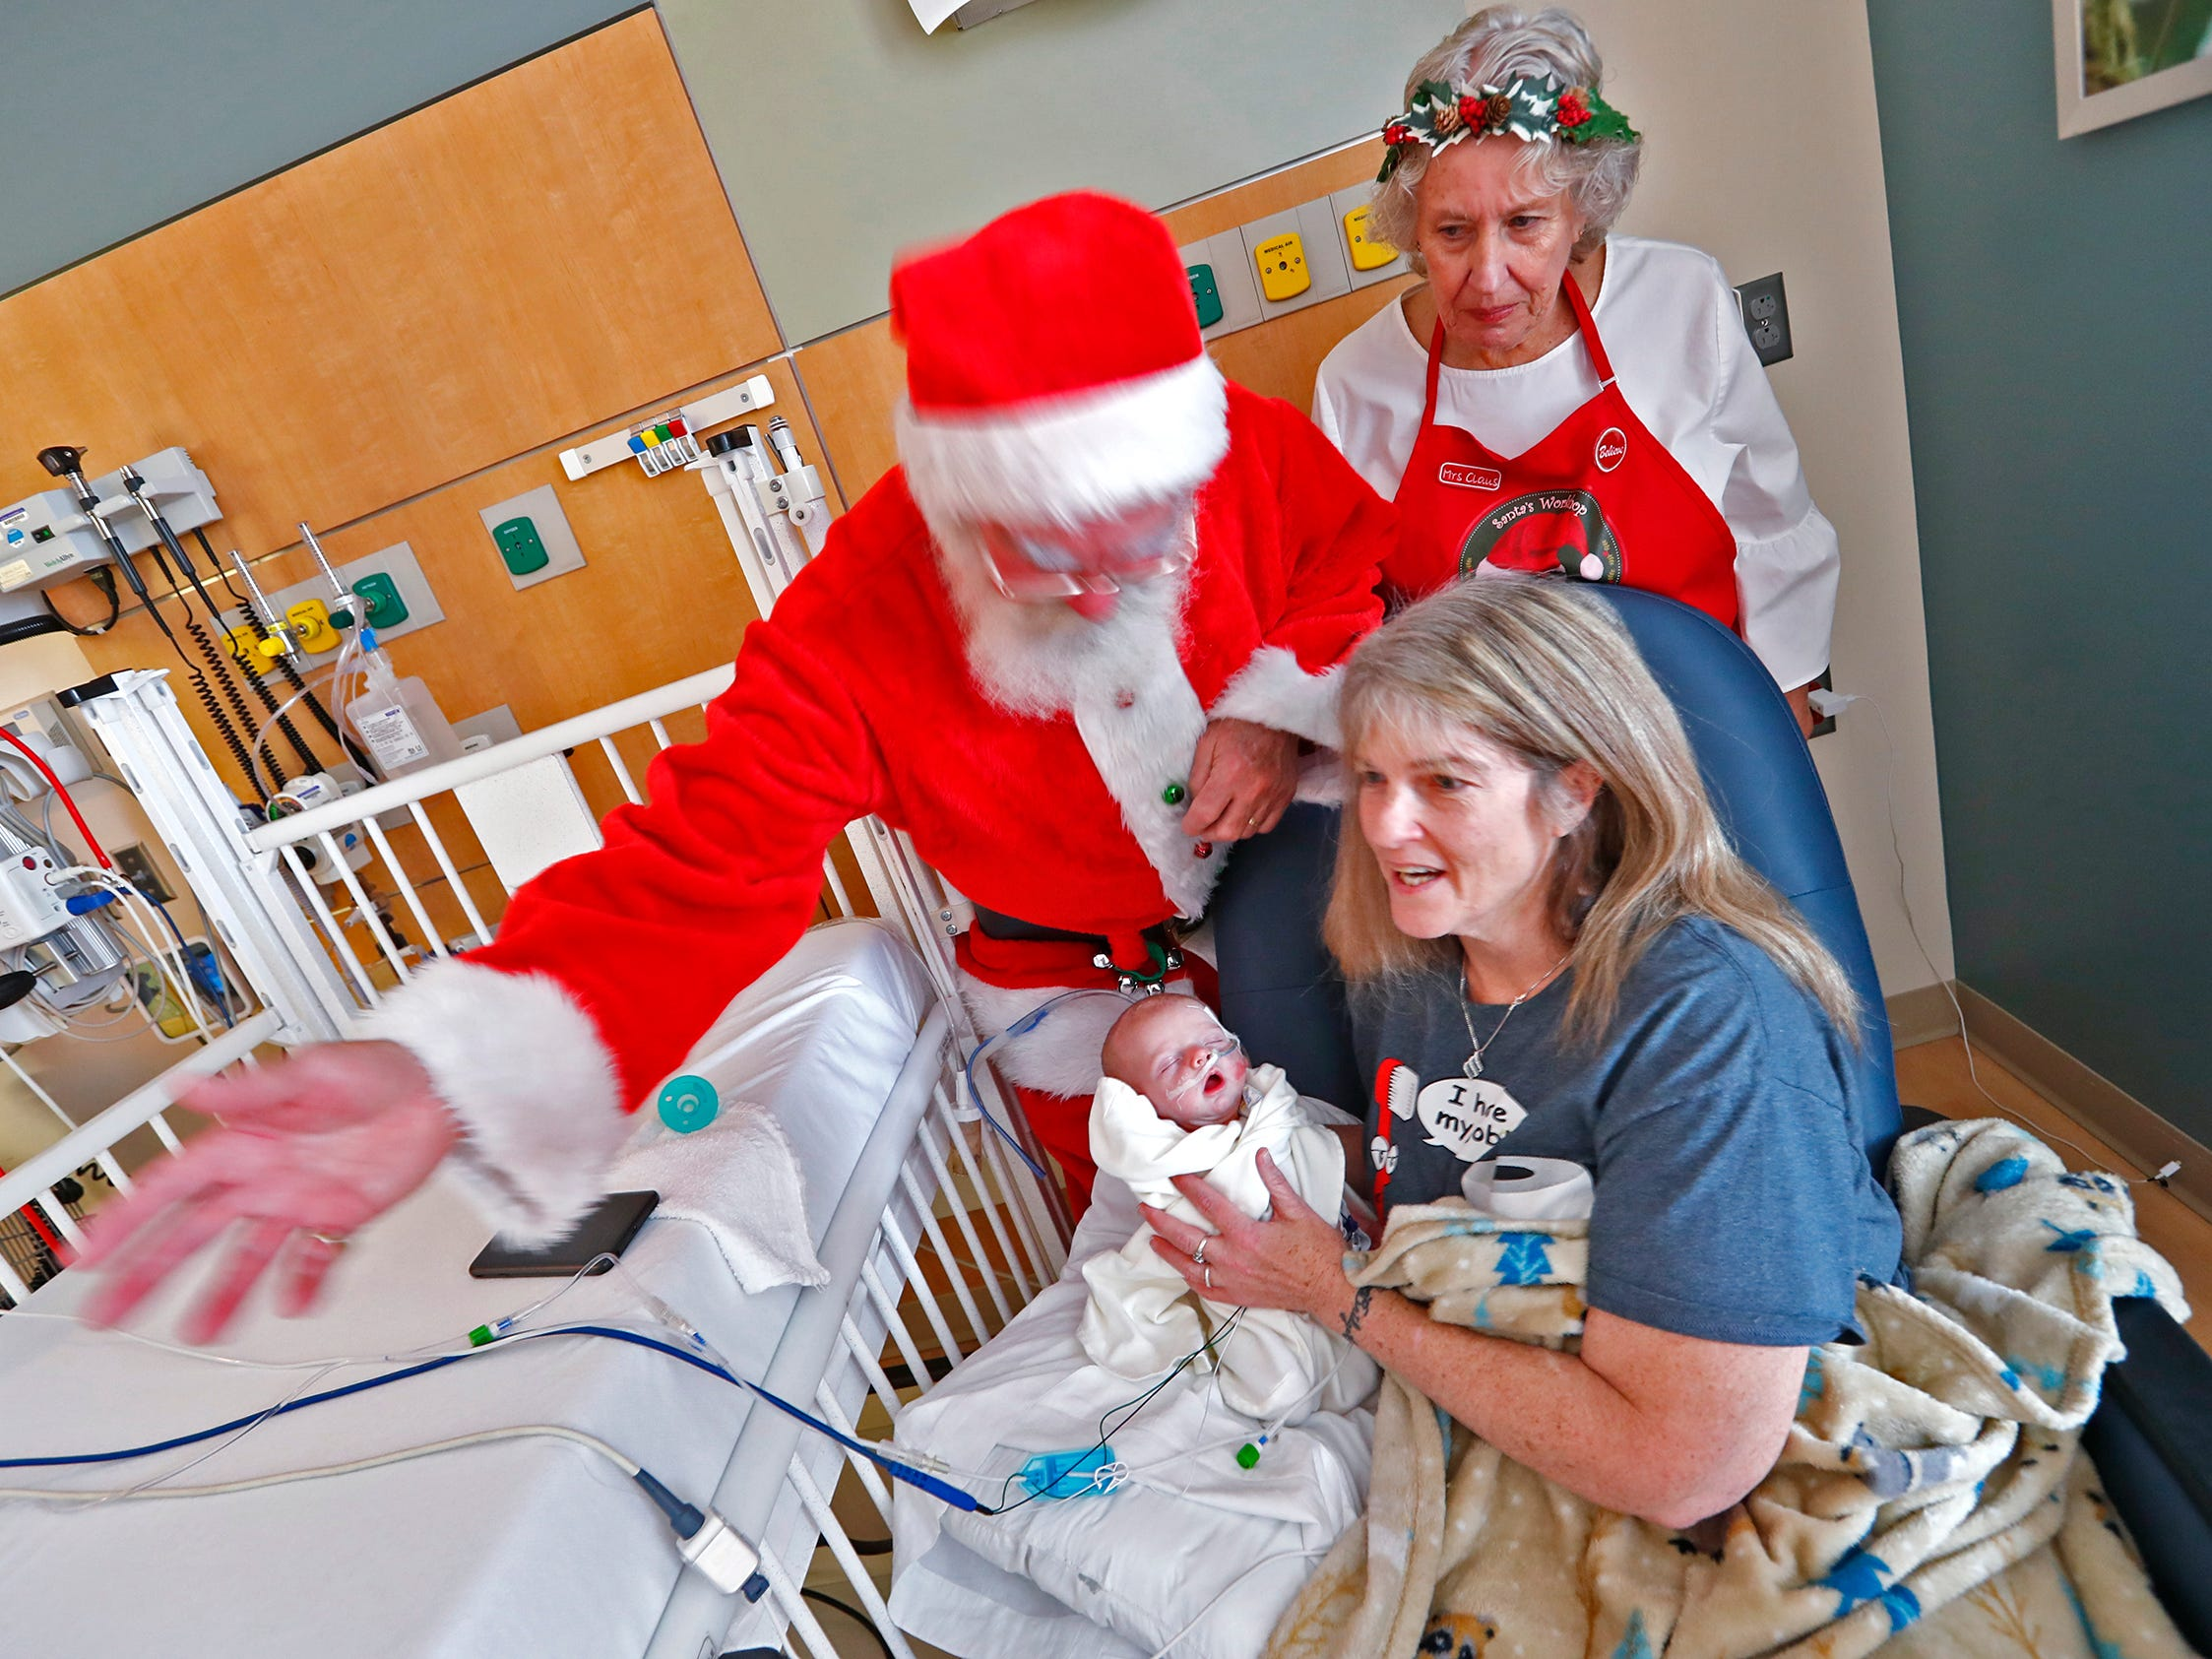 Santa and Mrs. Claus, aka Bill and Kathy Armstrong, talk with Patty Fultz and her grandson Jasper Butler, while the Clauses visit with kids at Riley Children's Health, Thursday, Dec. 13, 2018.